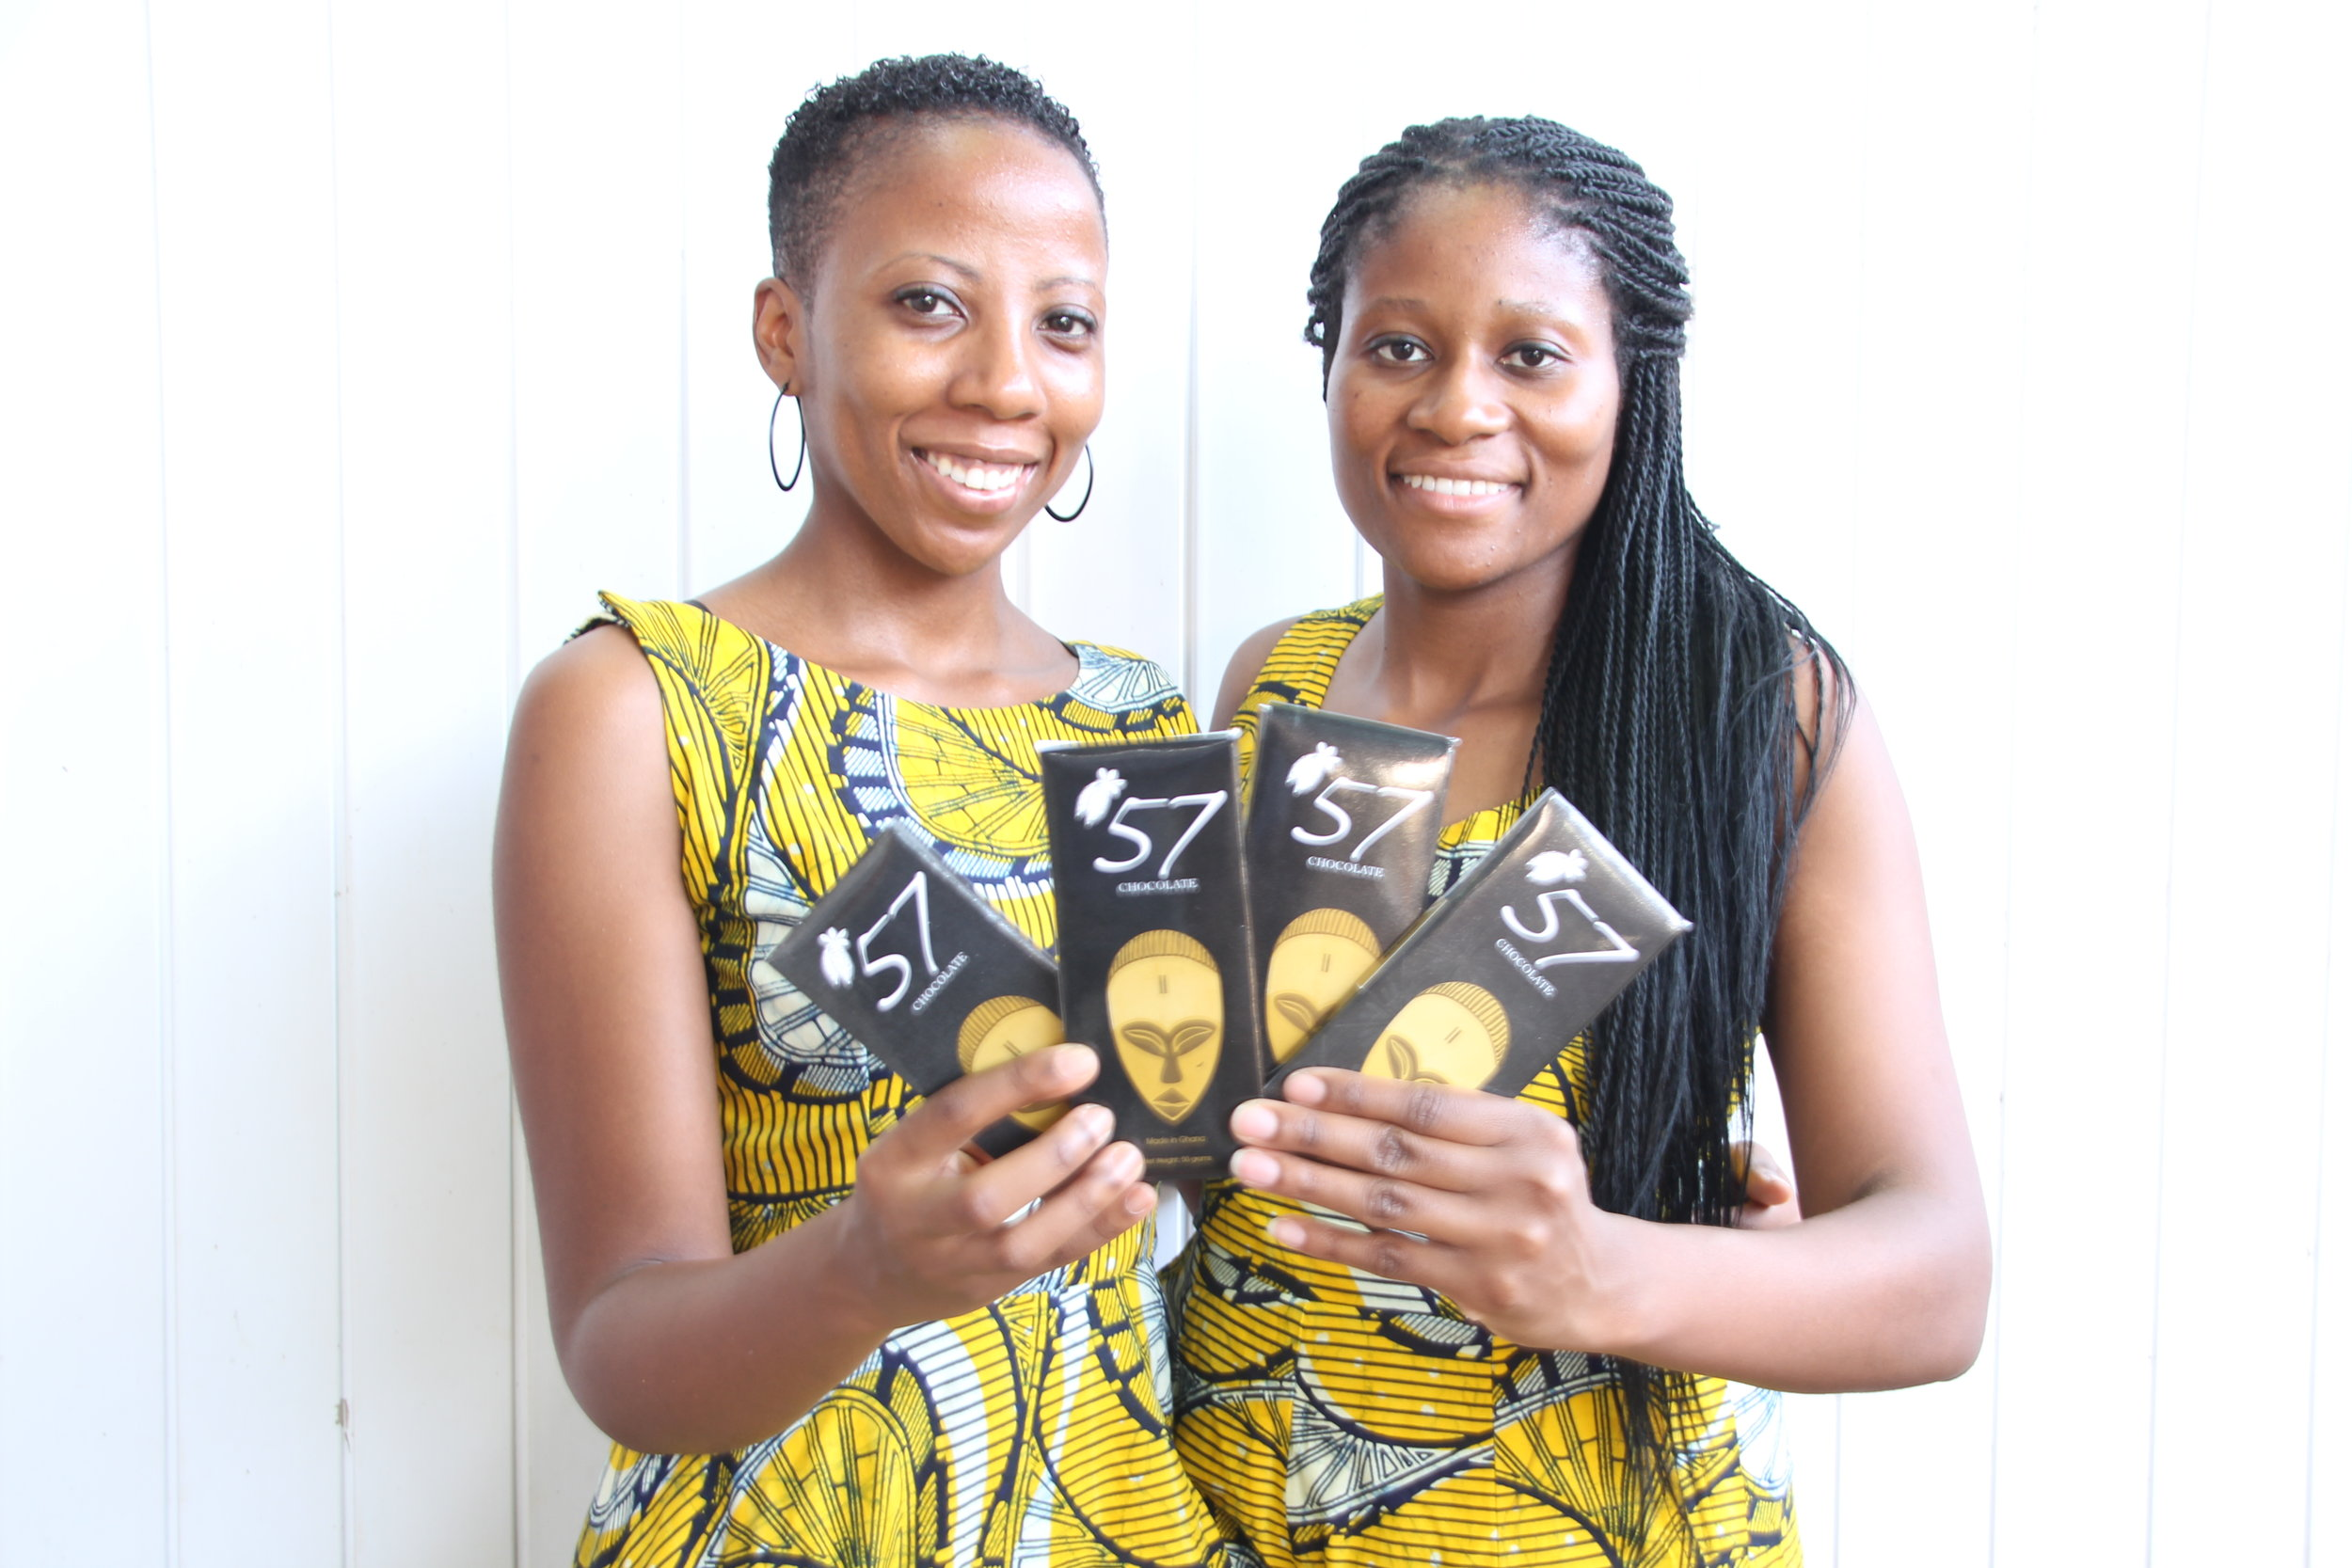 Kimberly  and Priscilla 57-chocolate-a-luxury-bean-to-bar-chocolate-manufactured-in-ghana Justyna Kedra WE Rule werule business entrepreneur global community.JPG